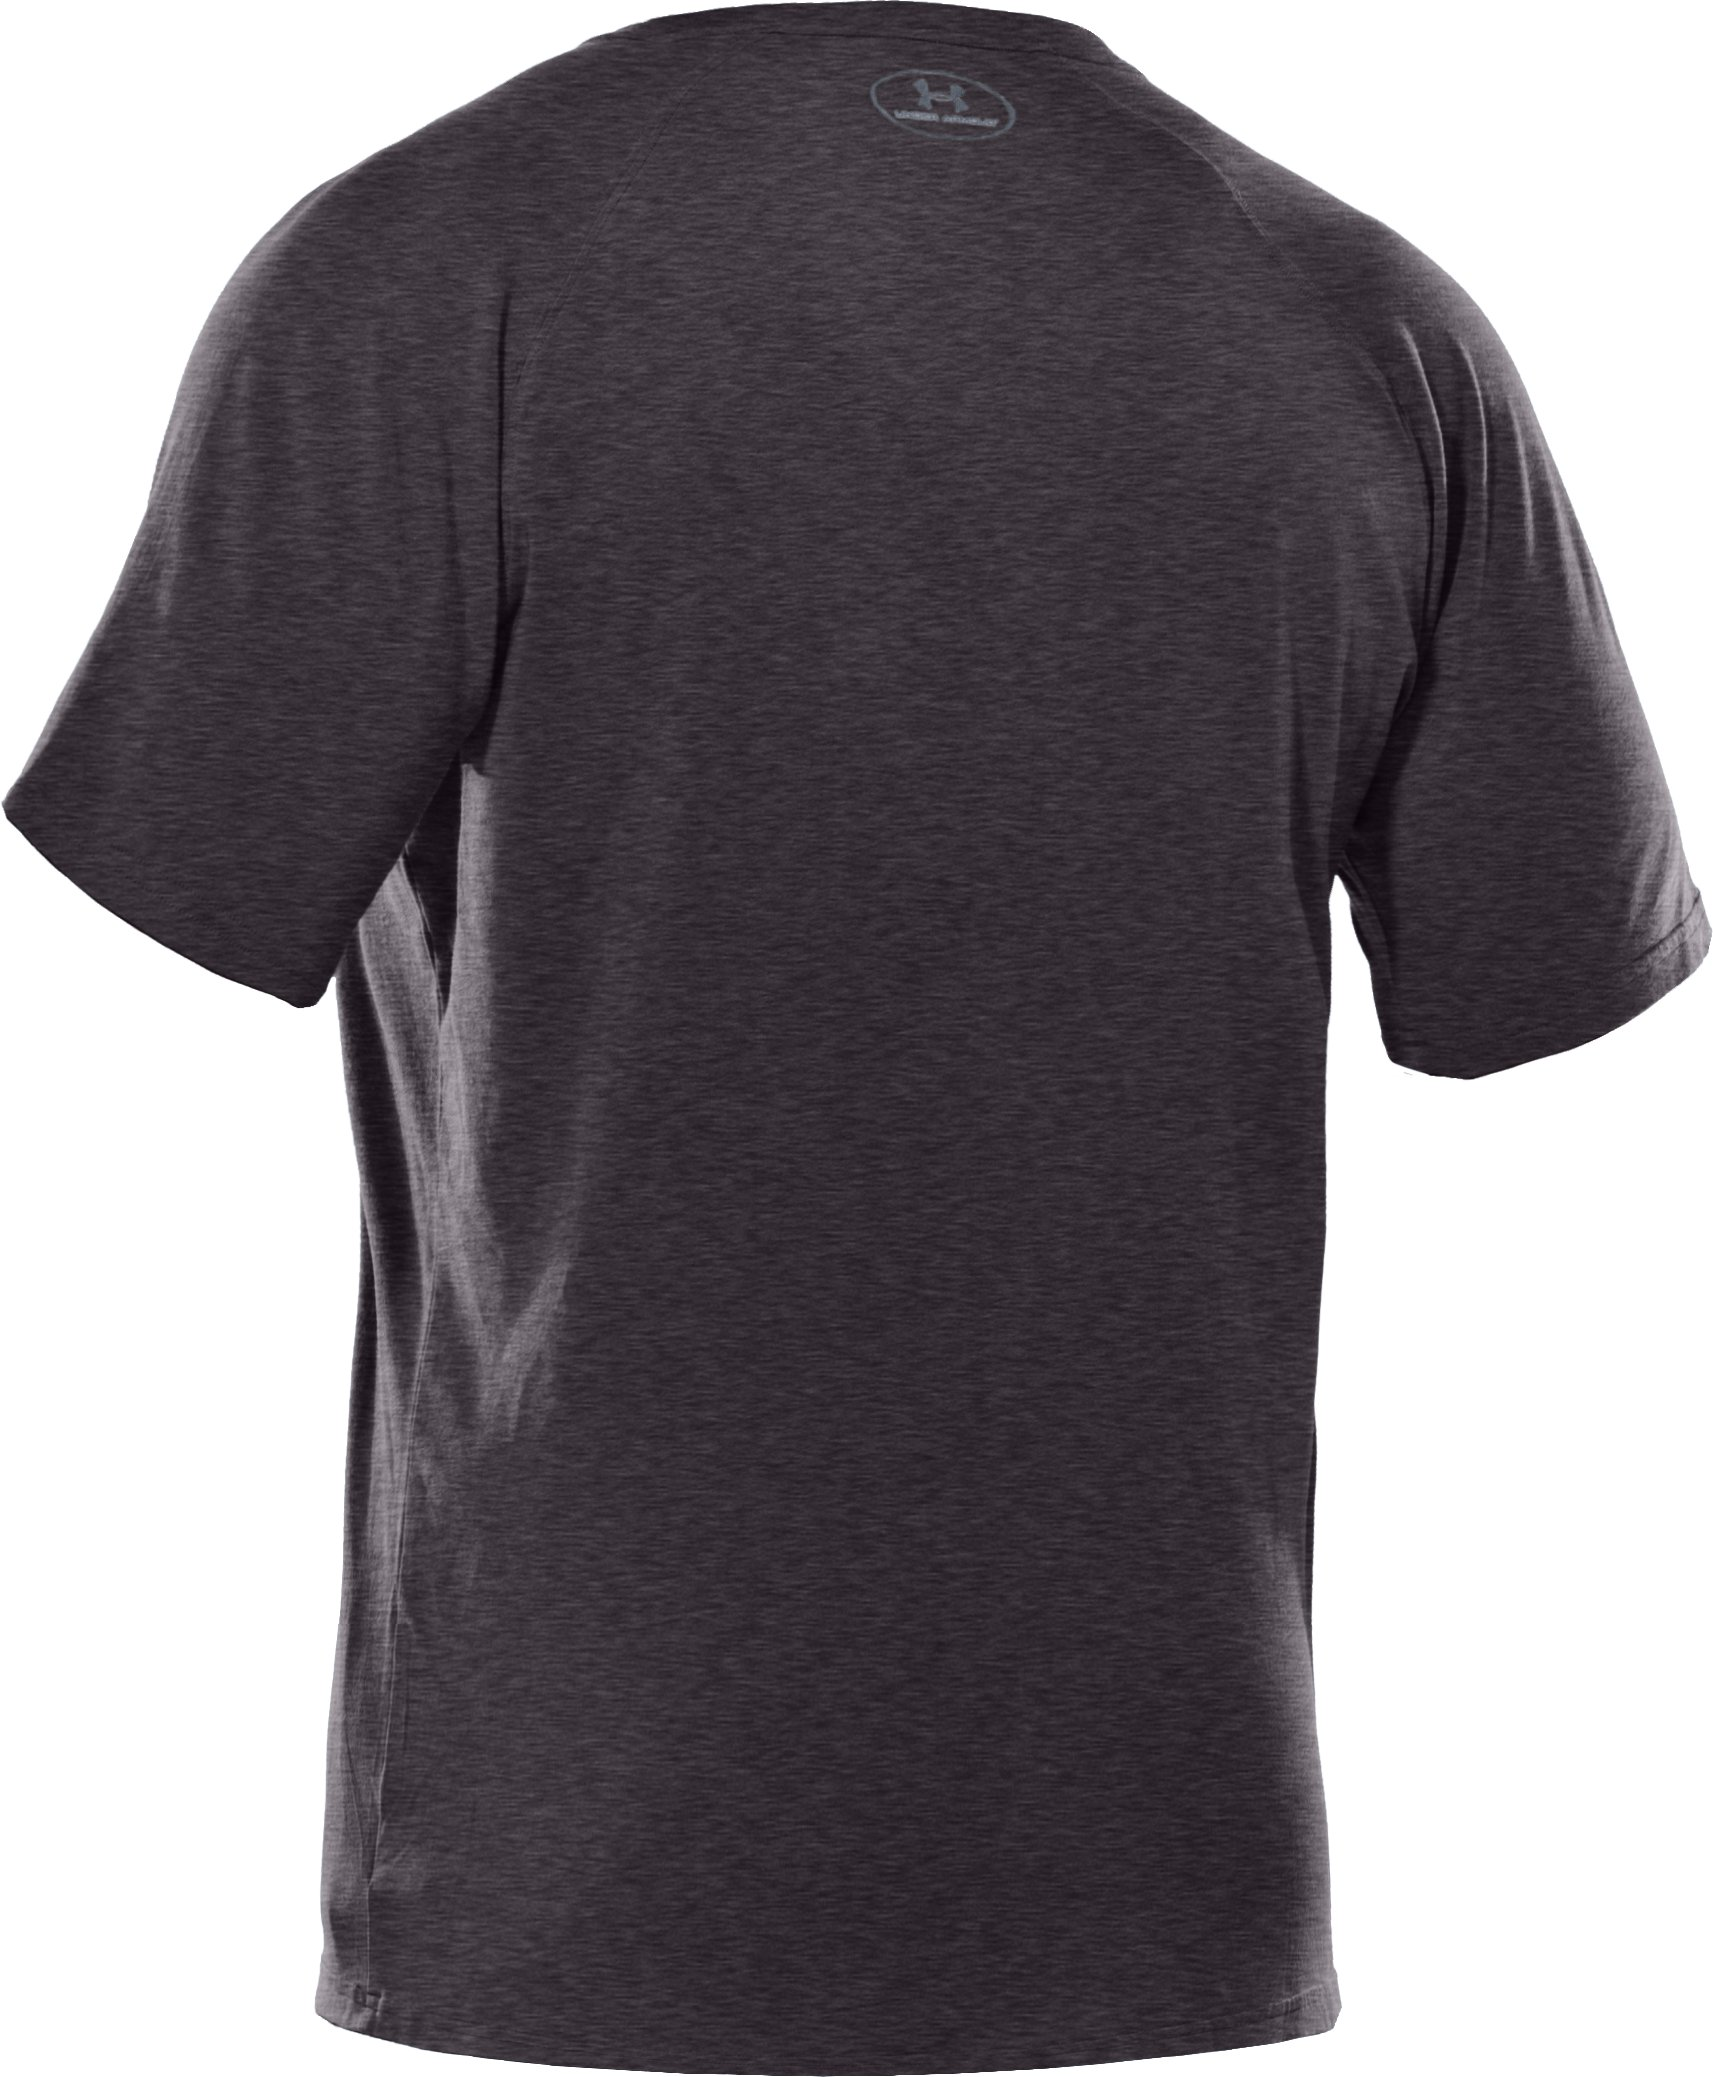 Men's Charged Cotton® V-Neck T-Shirt, Carbon Heather